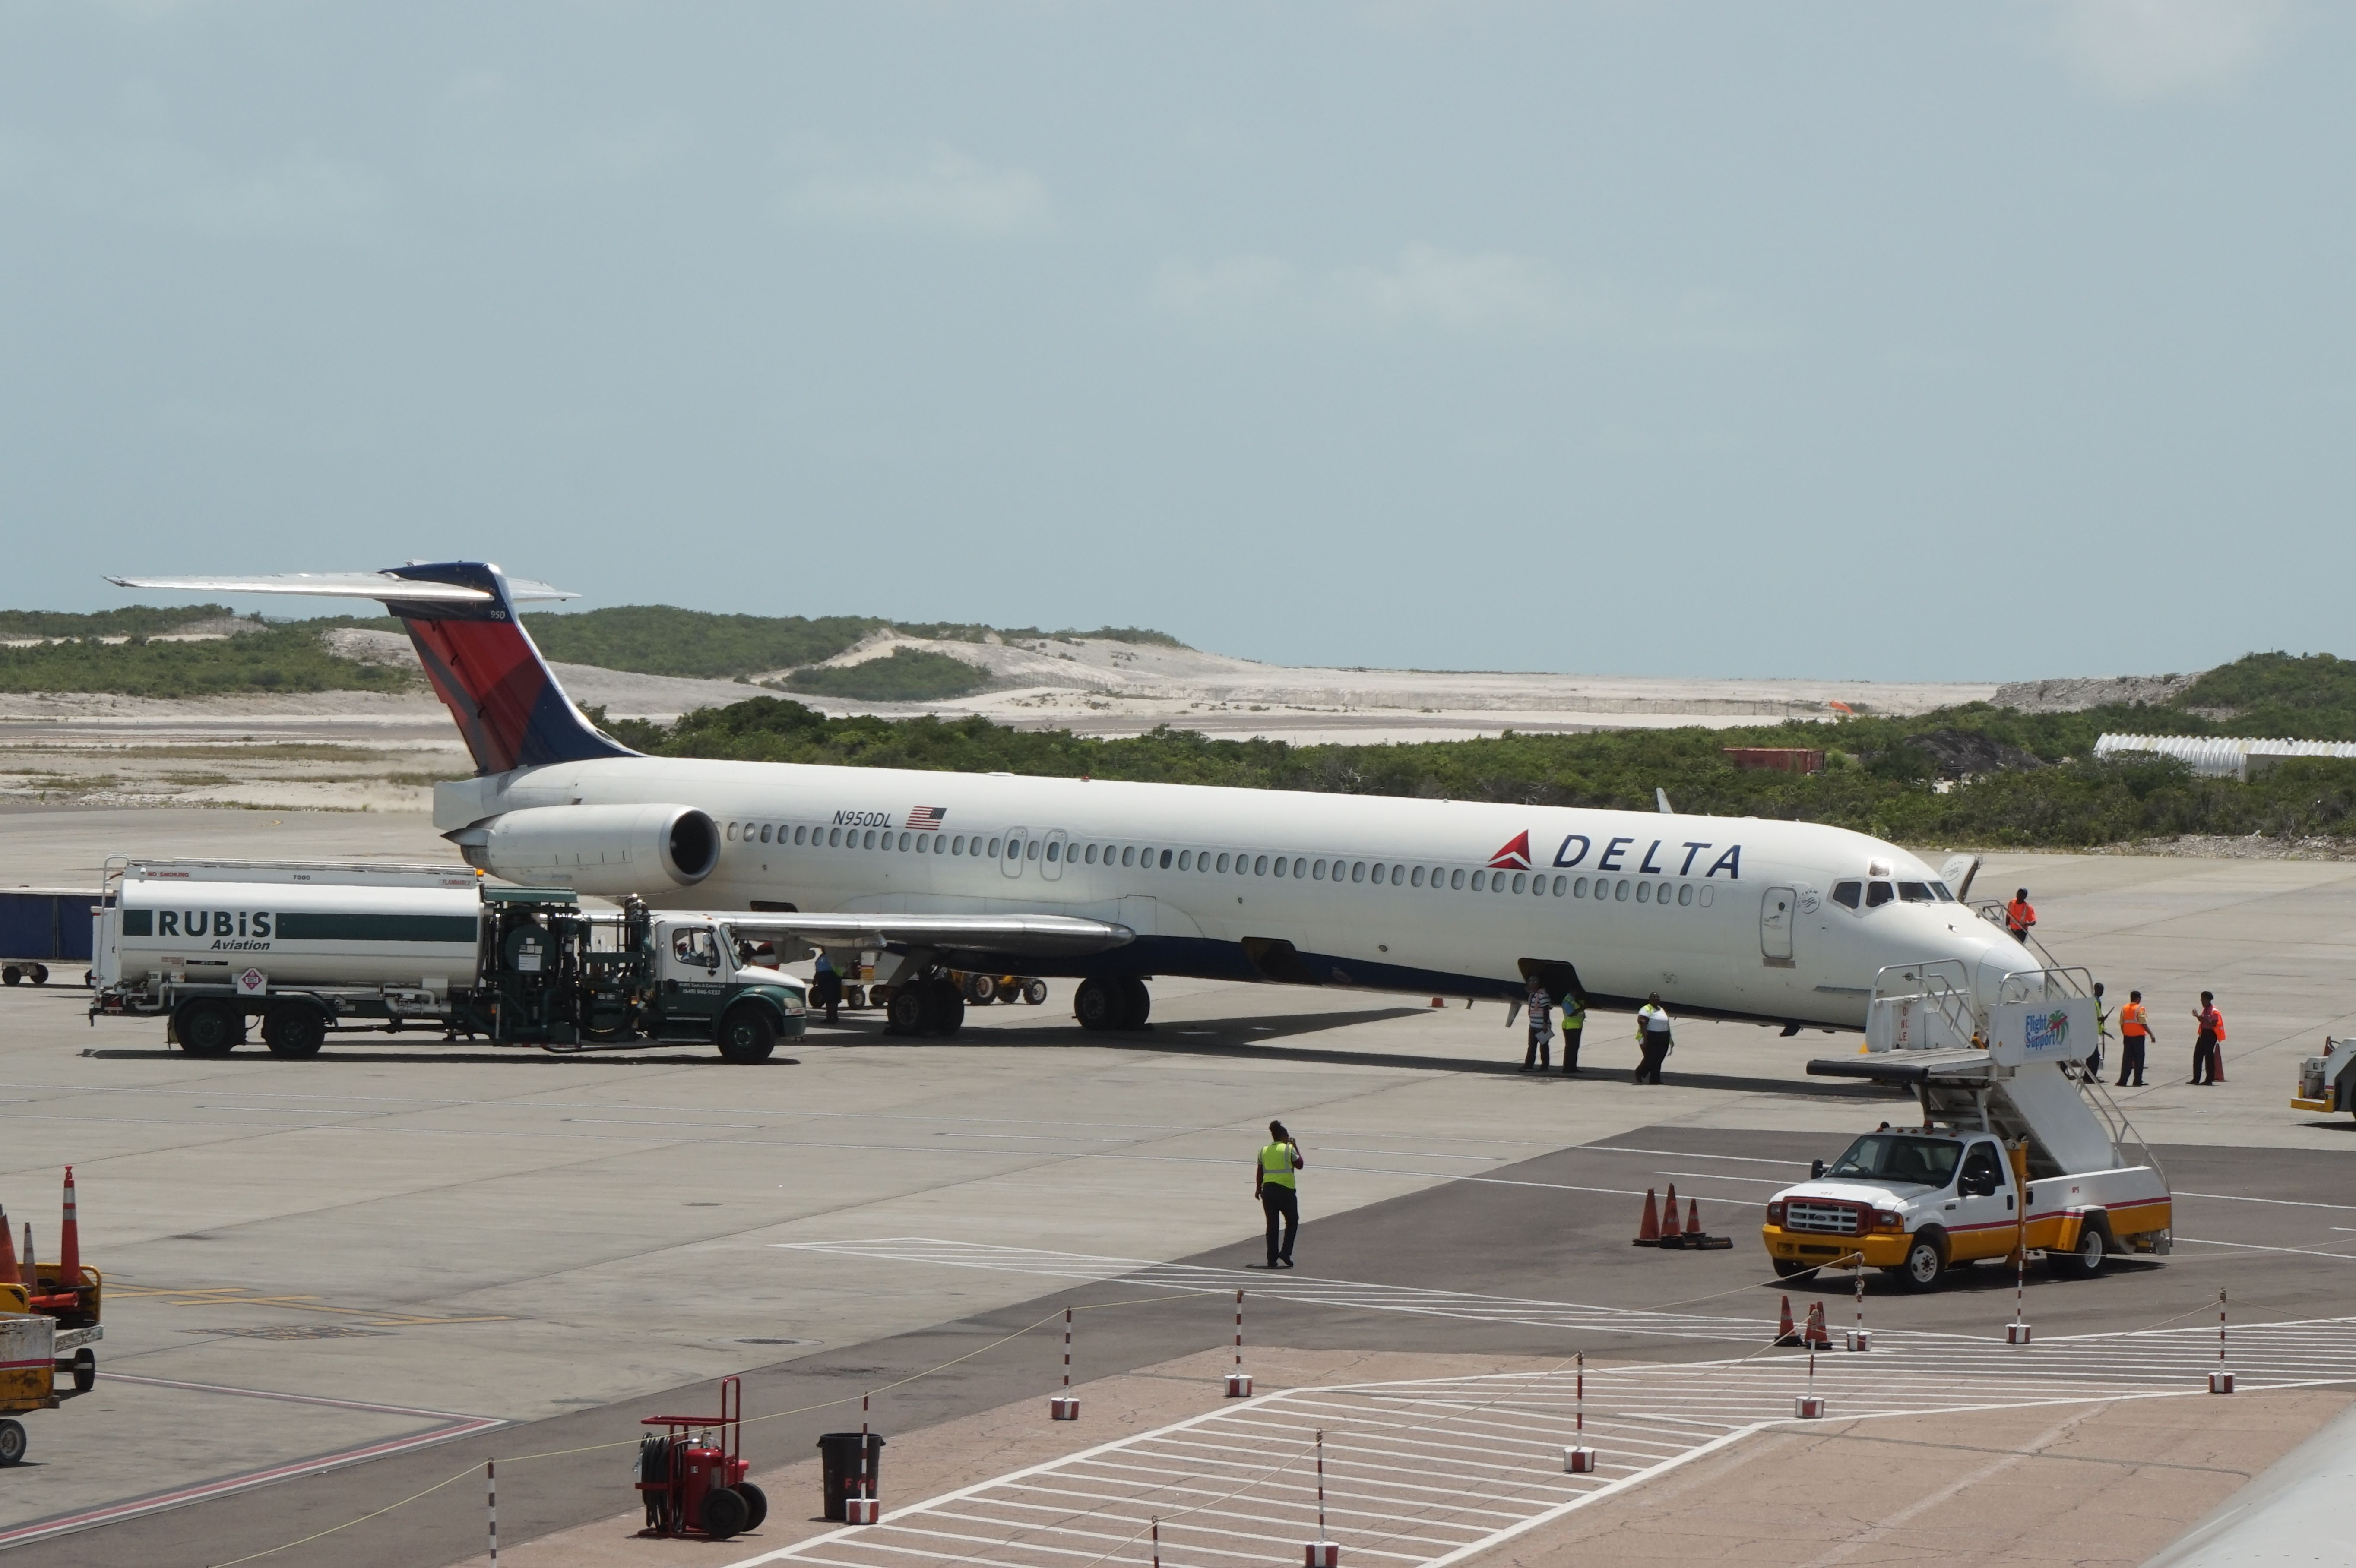 Delta MD80 at Providenciales International Airport